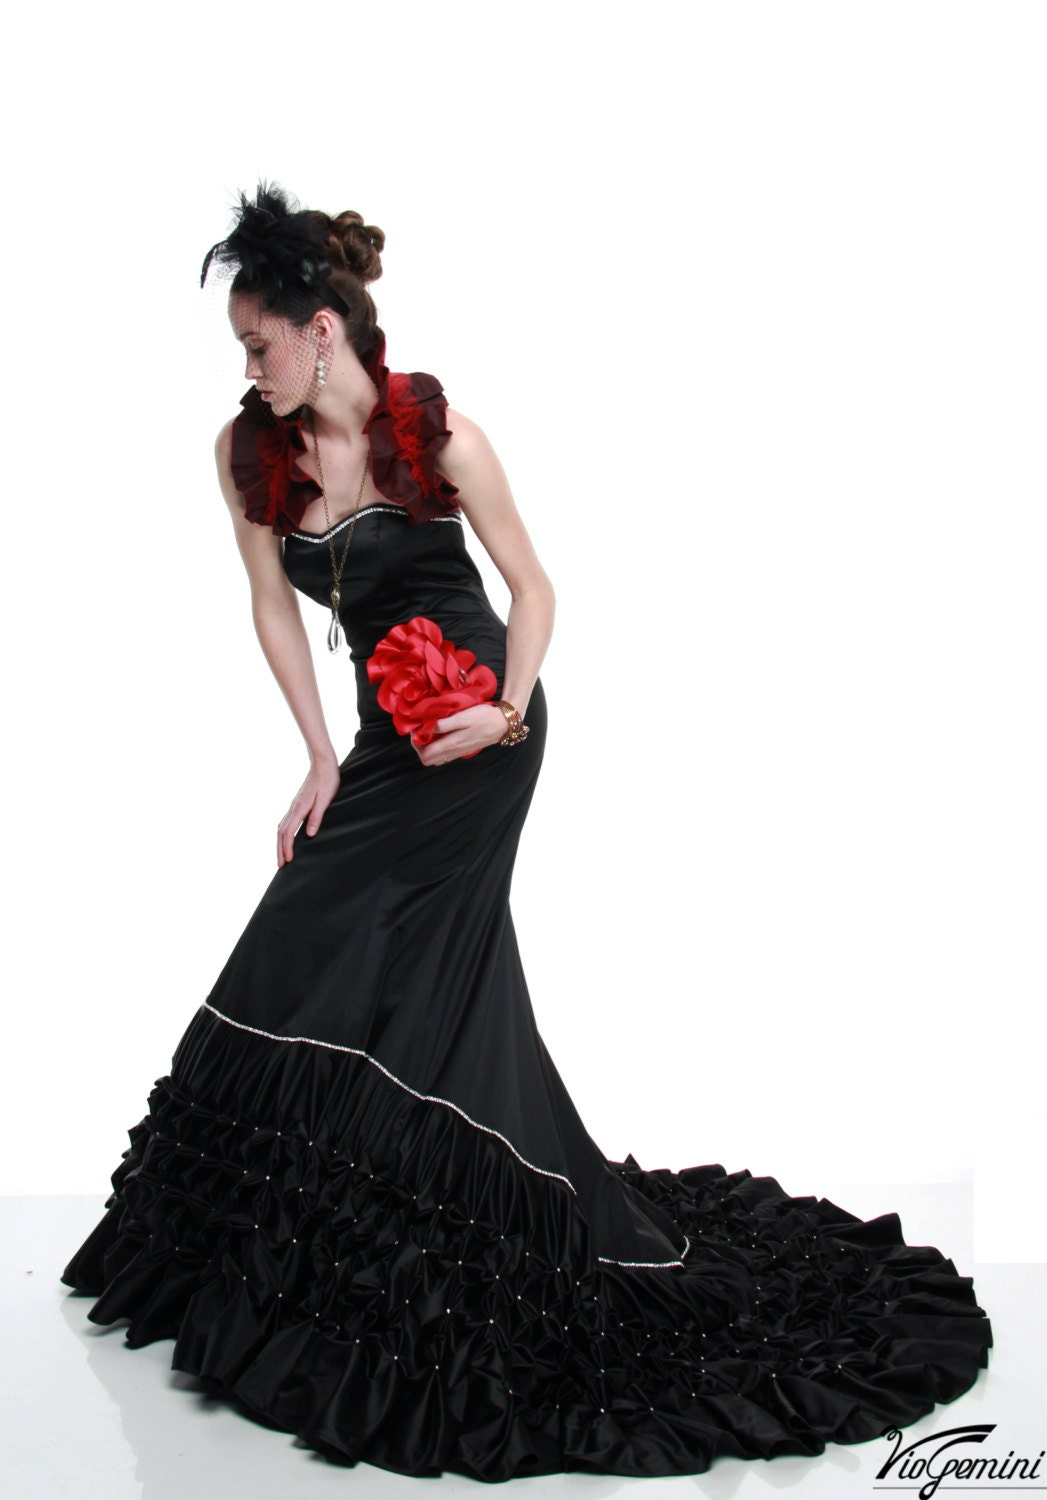 Gothic Wedding Dress Evening Gown Red Carpet Gown by VioGemini